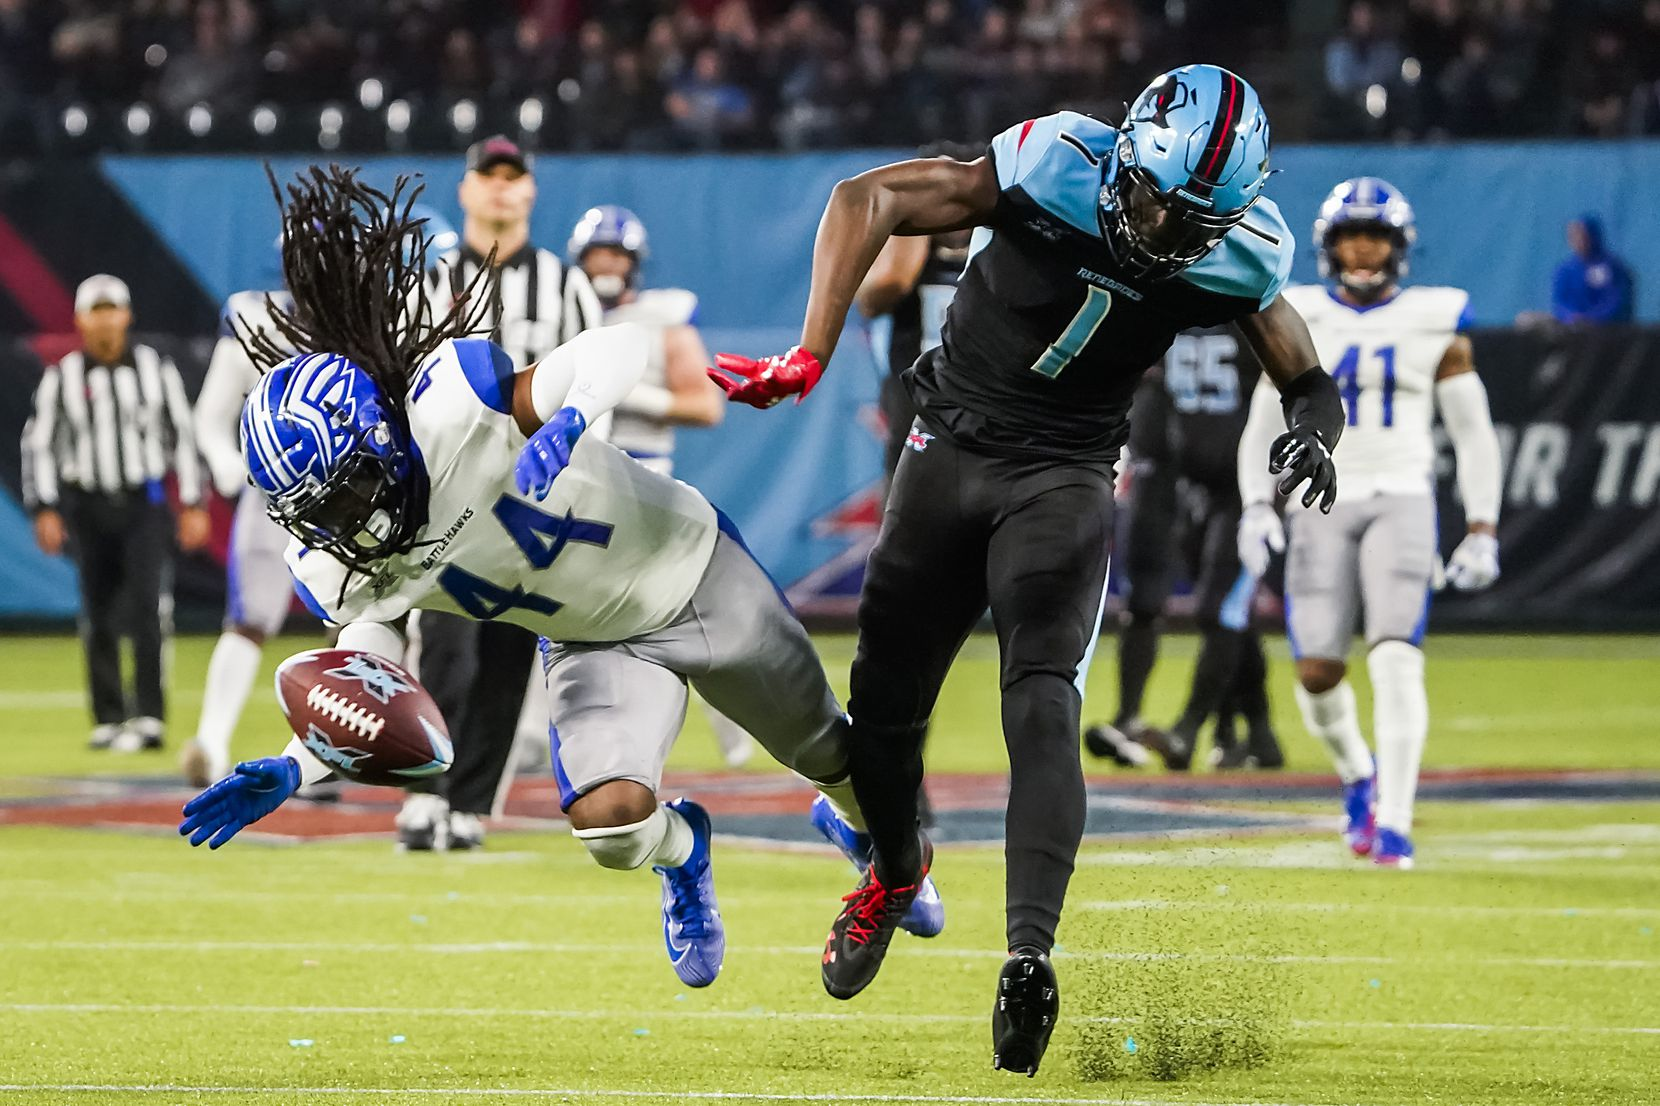 Dallas Renegades wide receiver Jazz Ferguson (1) has a pass sail out of reach as St. Louis Battlehawks safety Joe Powell (44) defends during the second half of an XFL football game at Globe Life Park on Sunday, Feb. 9, 2020, in Arlington.